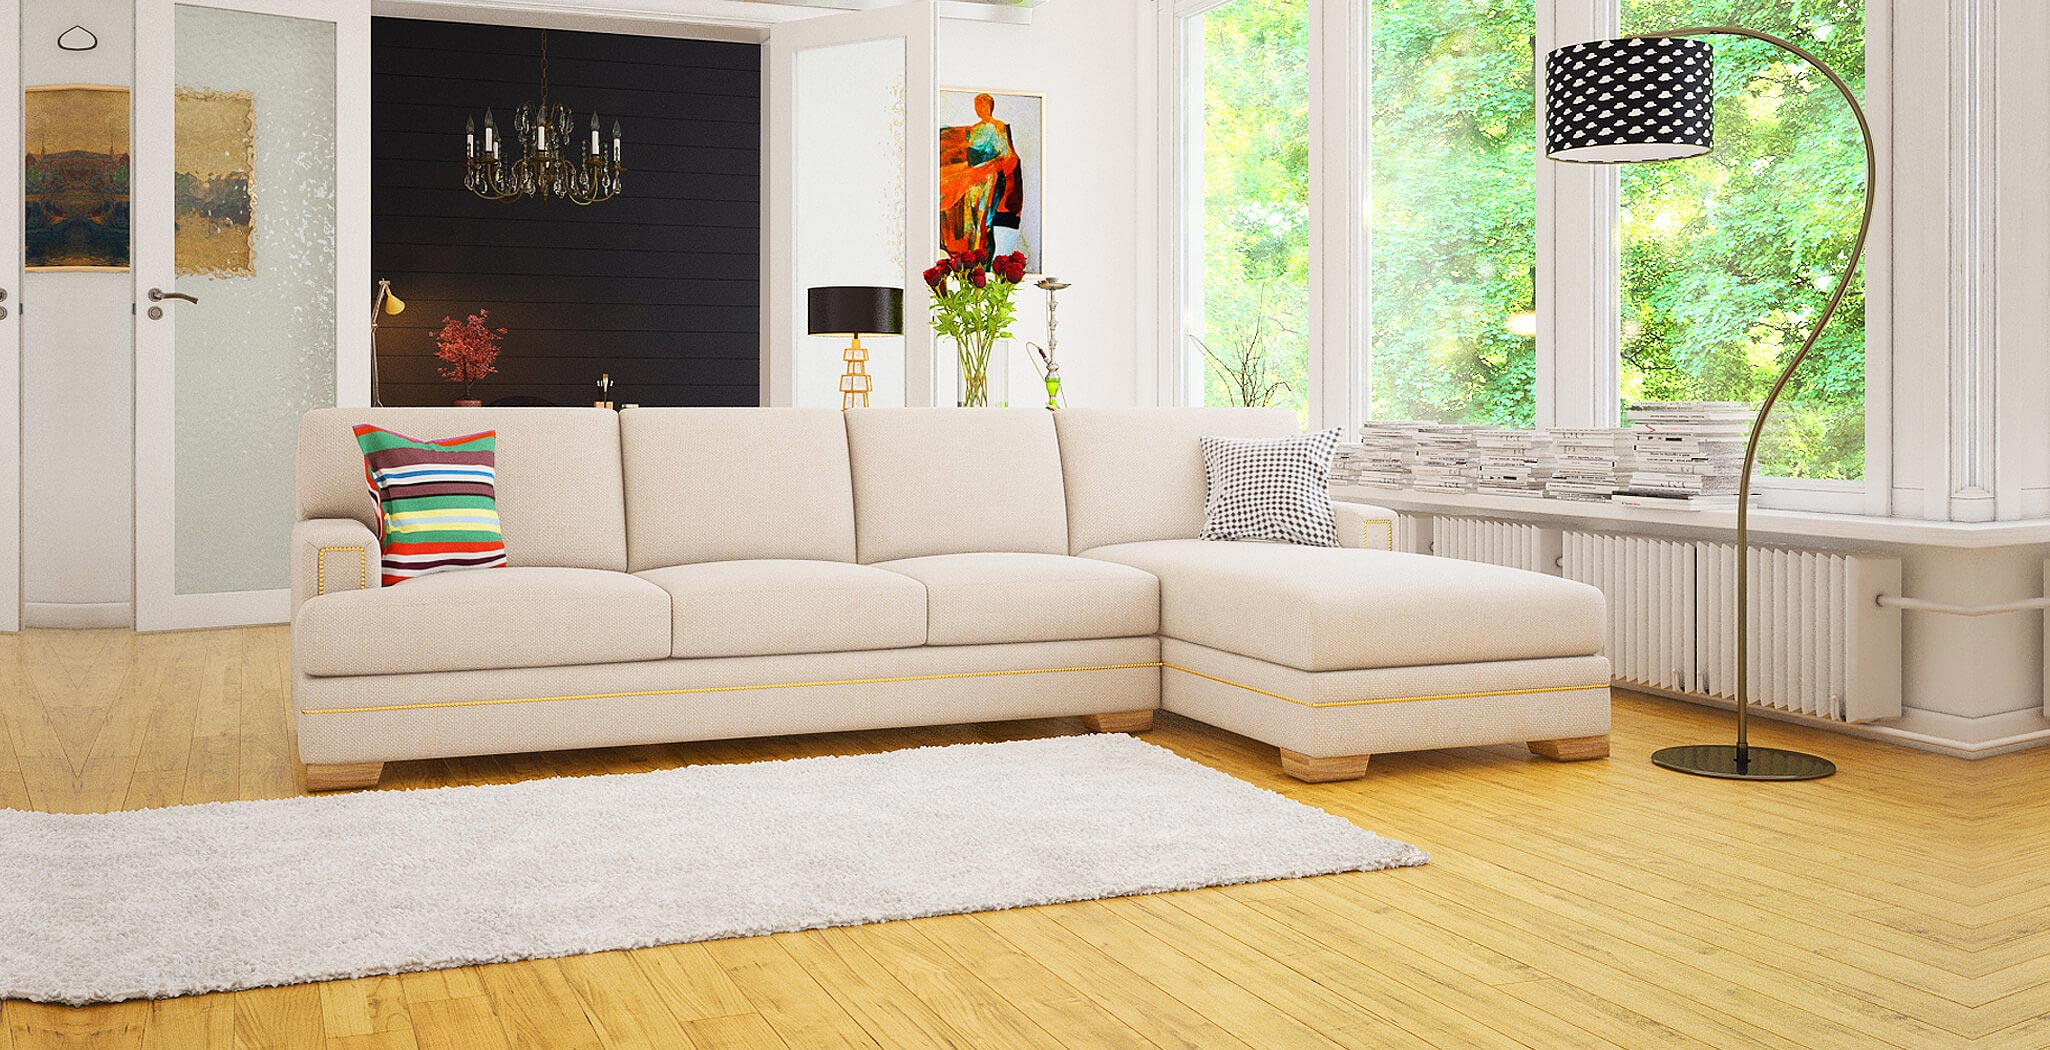 barcelona panel premium furiture DreamSofa